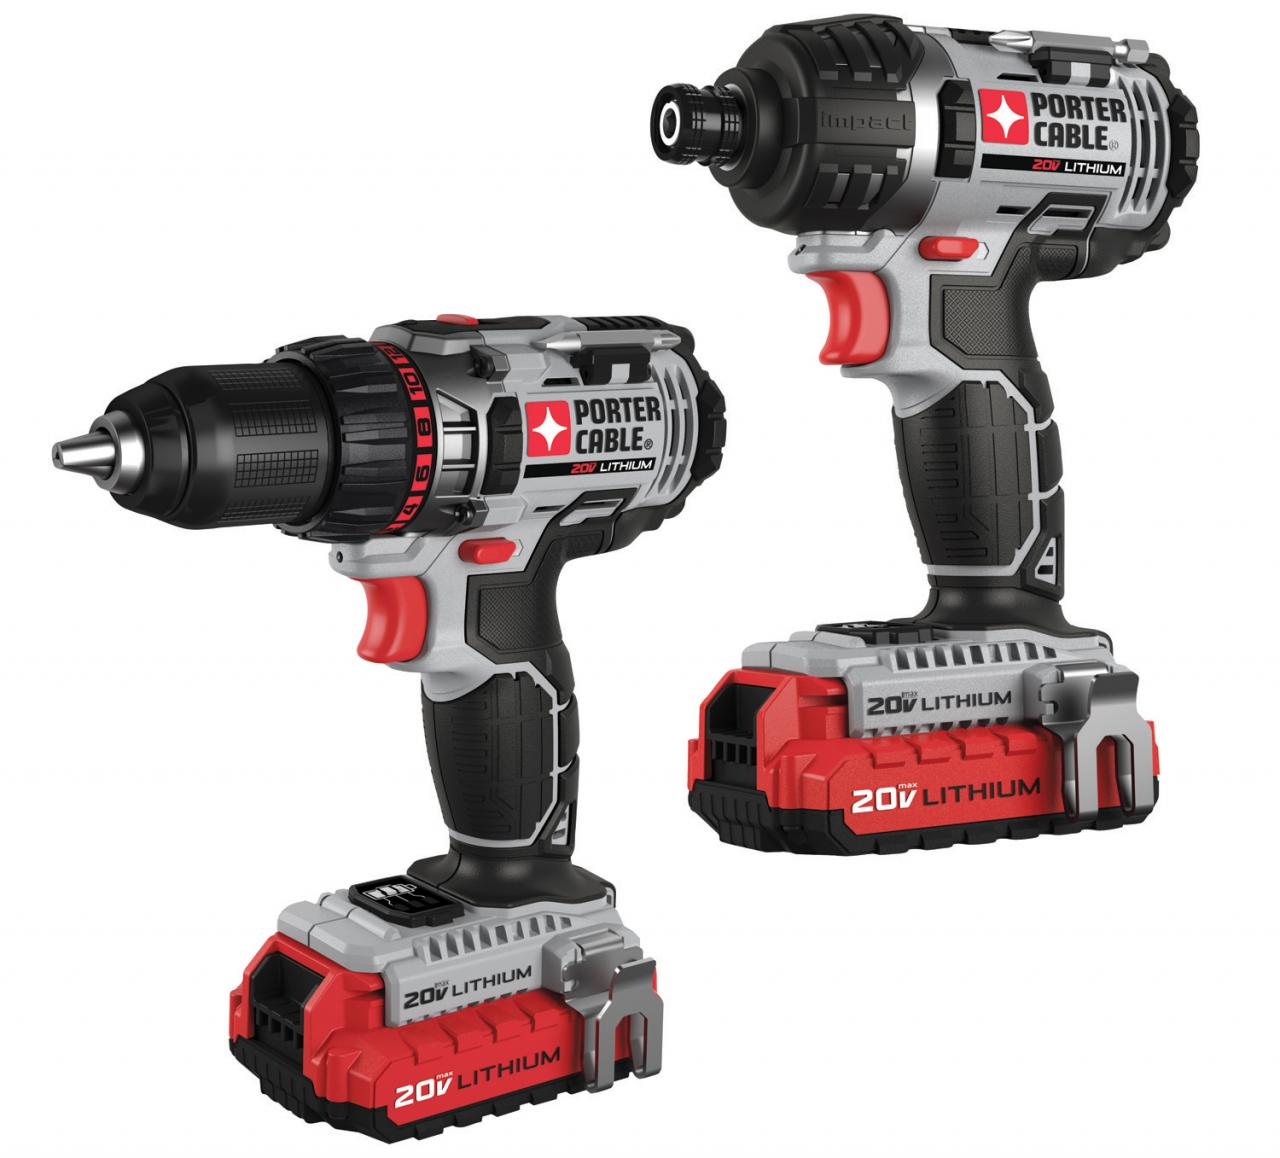 PORTER-CABLE's new 20 Volt MAX* Lithium Ion Compact Drill/Driver and 20 Volt MAX* Lithium Ion Impact Driver